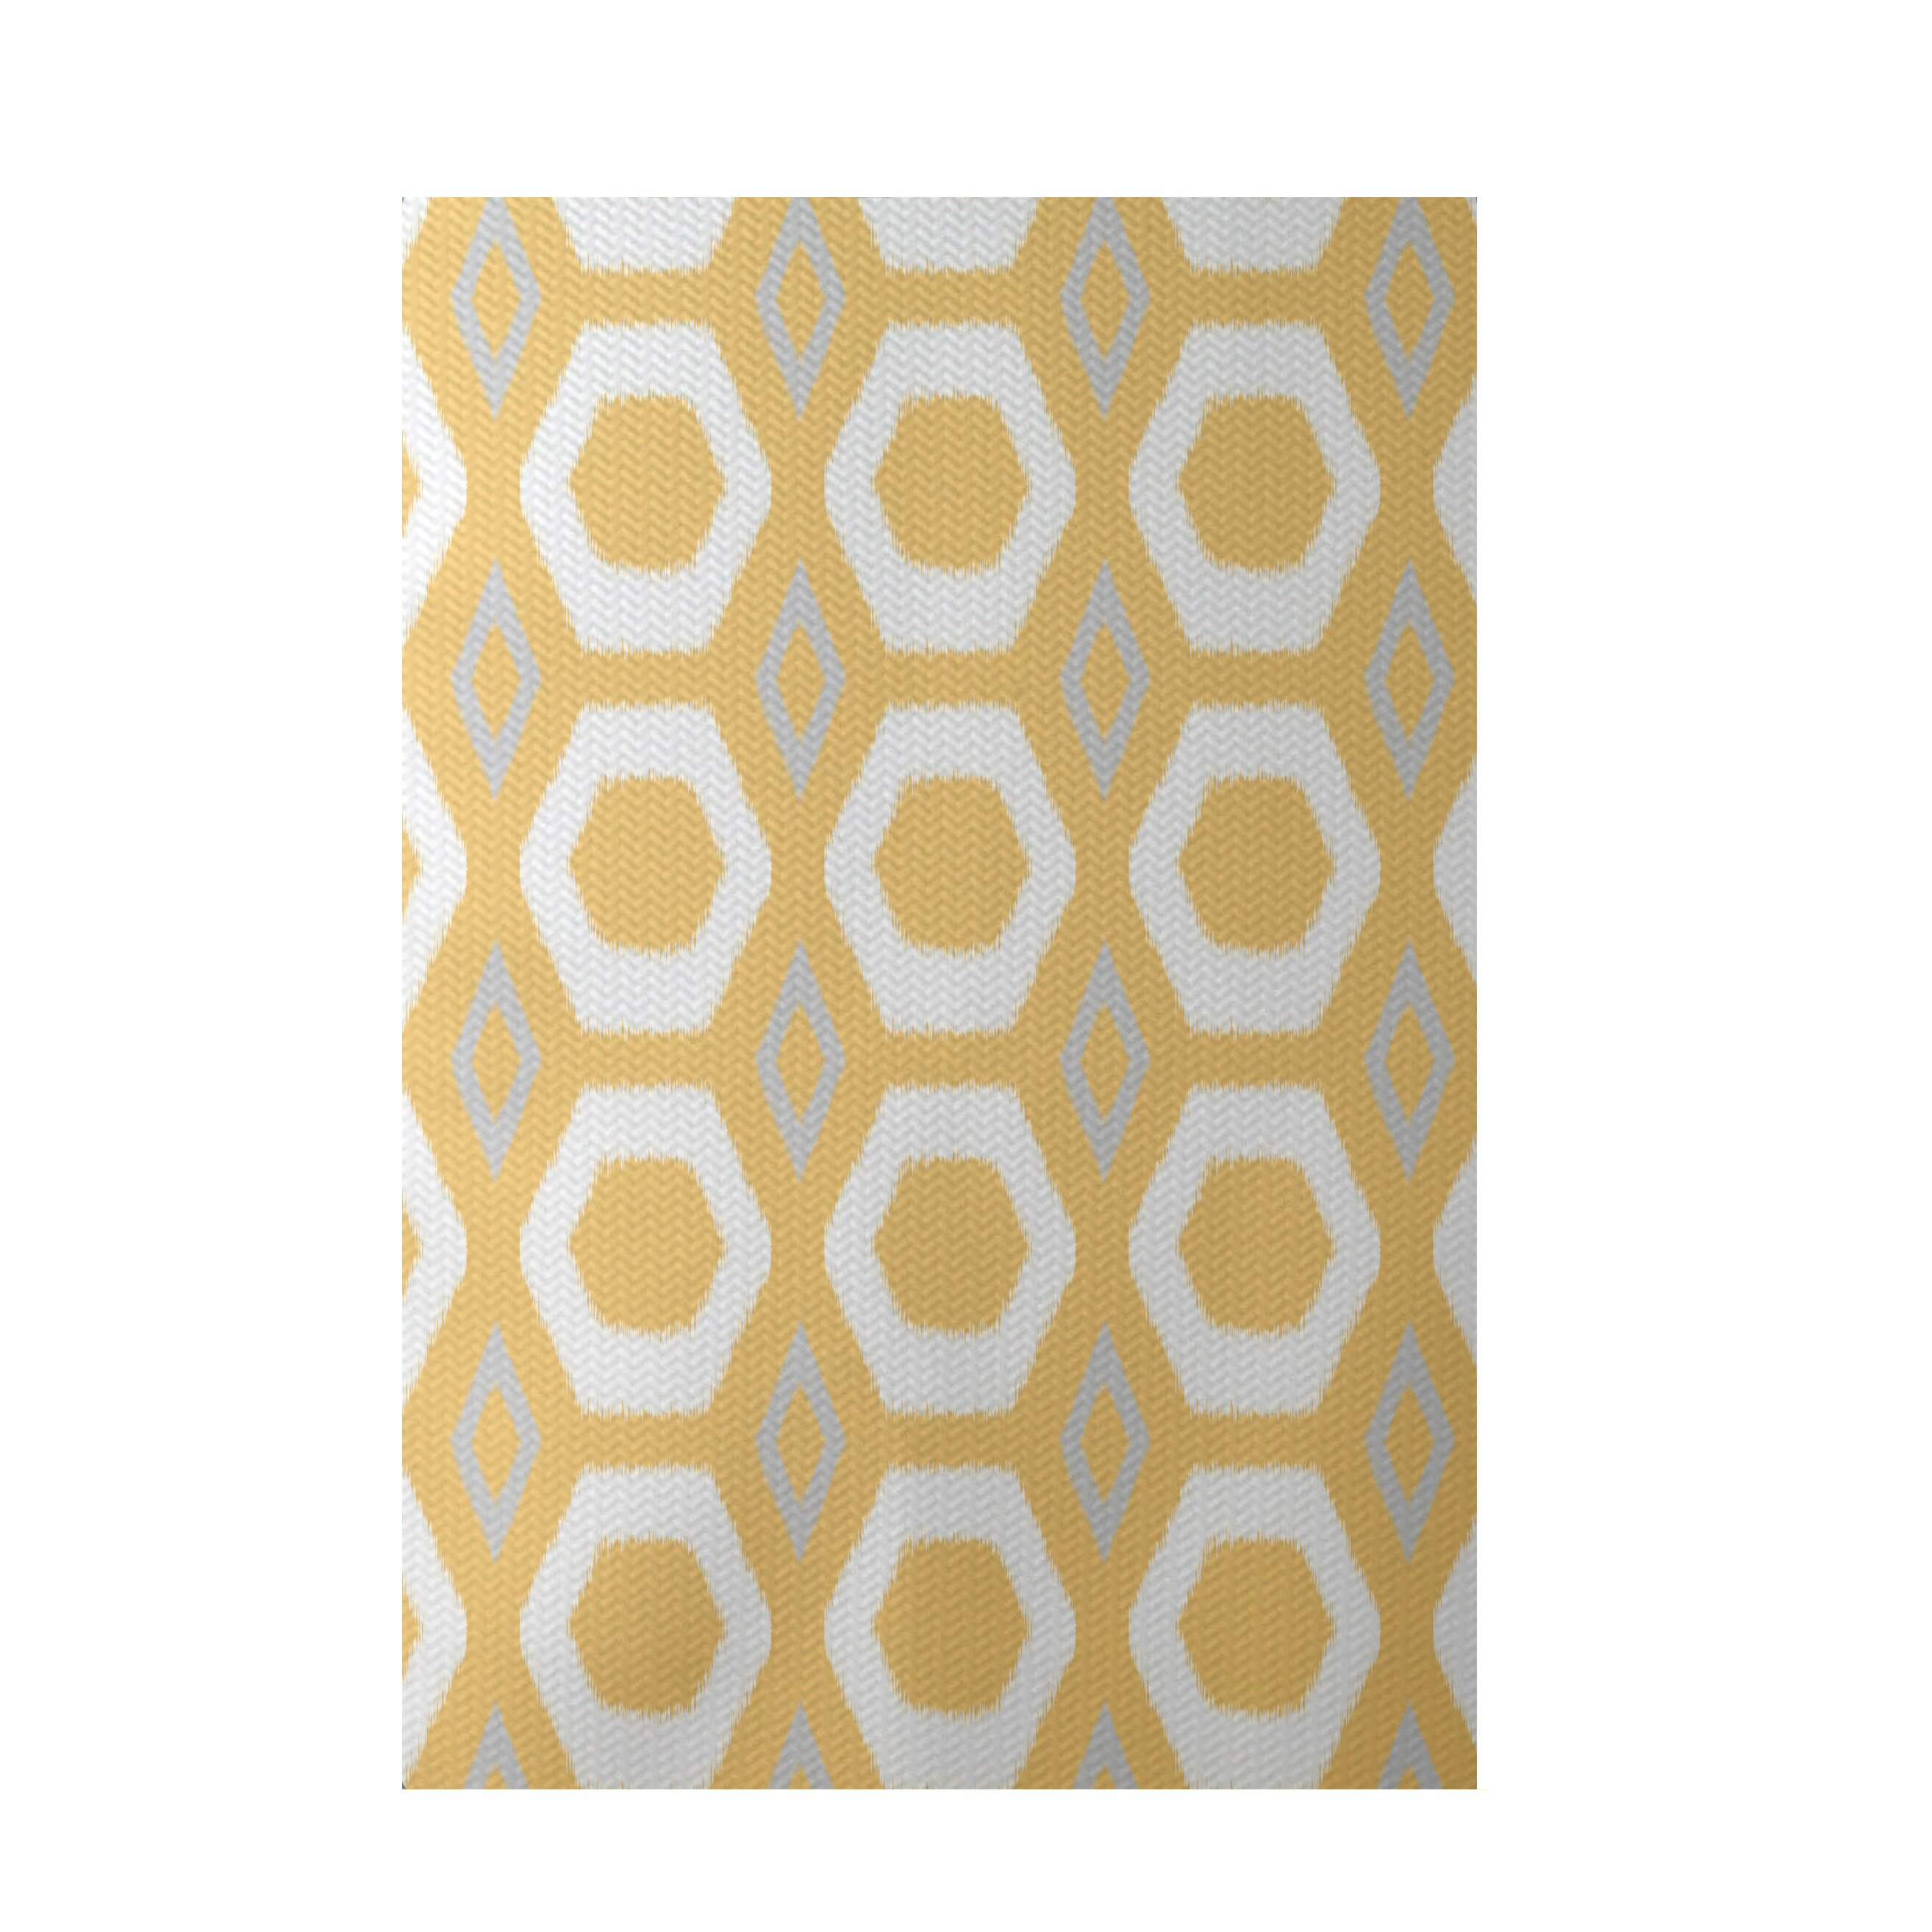 E by design more hugs and kisses geometric print yellow for Geometric print area rugs